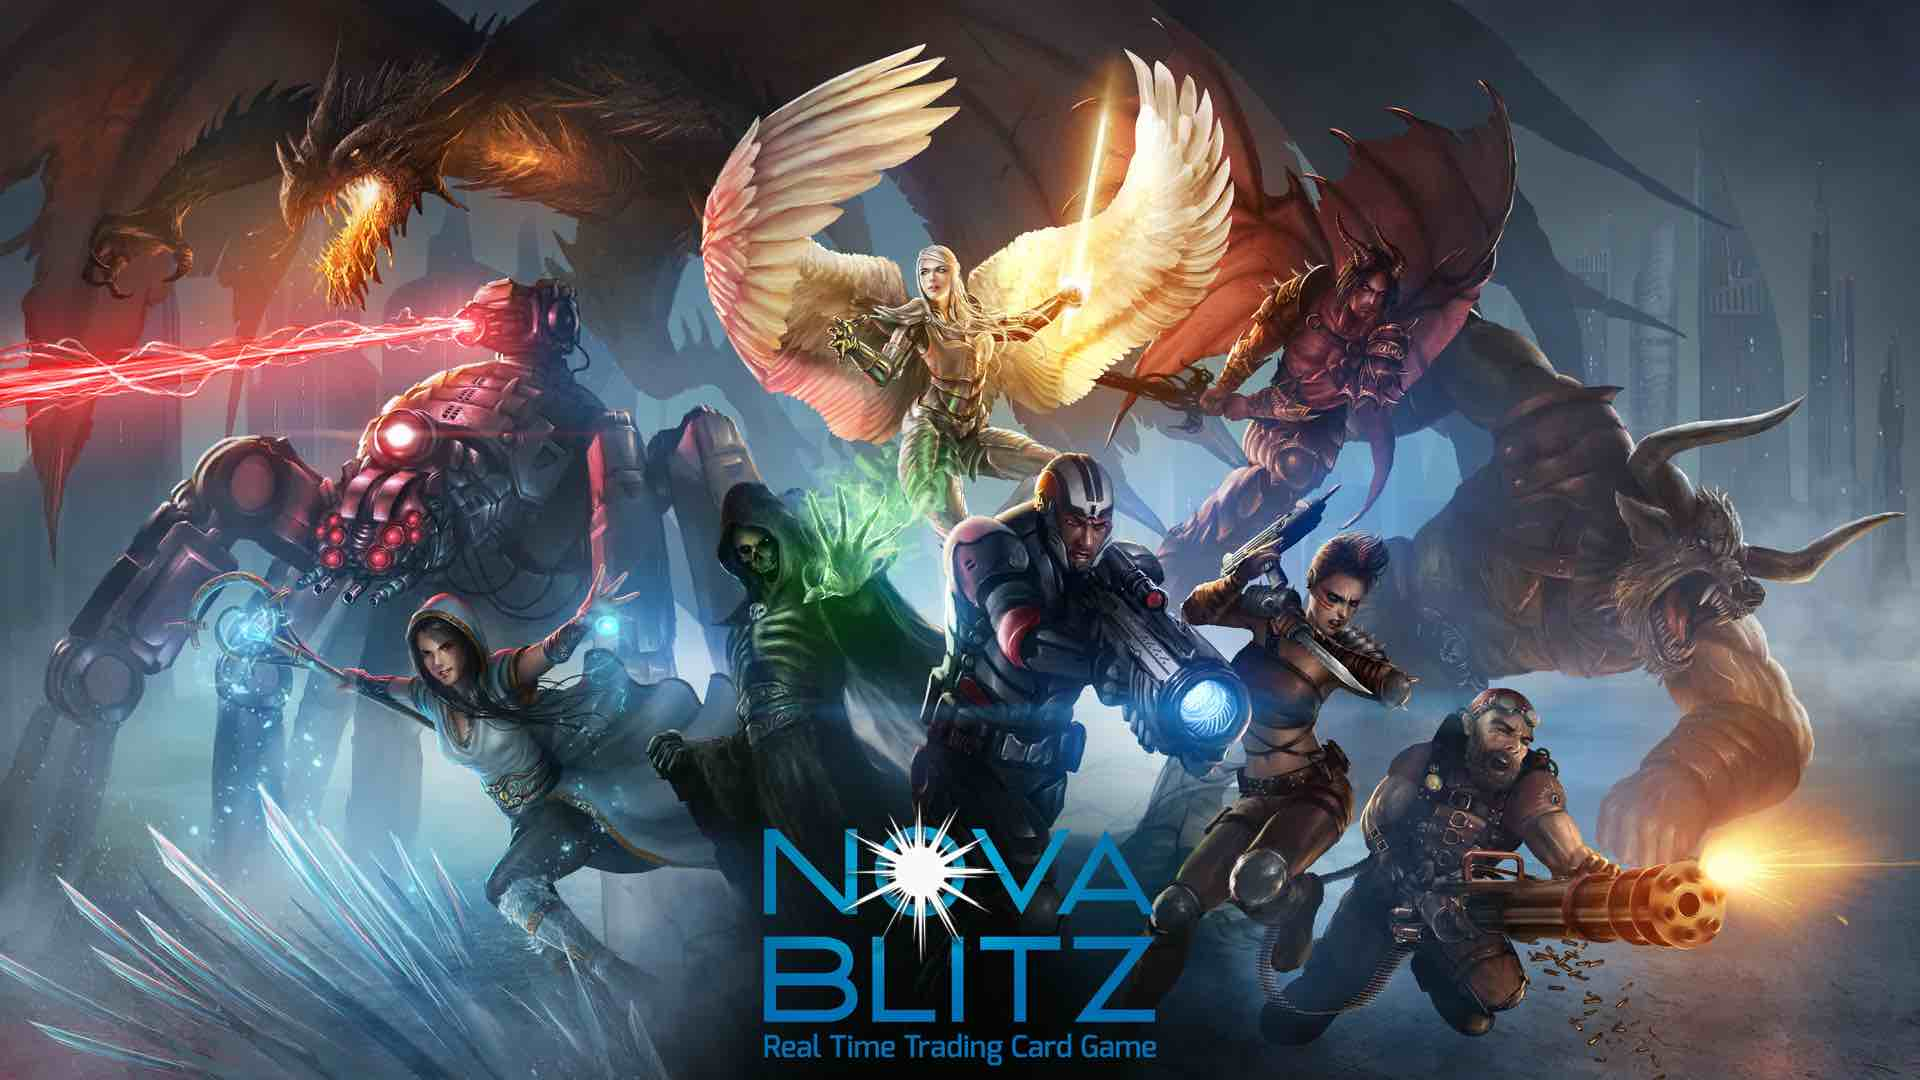 Nova Blitz for Windows 10 PC Download